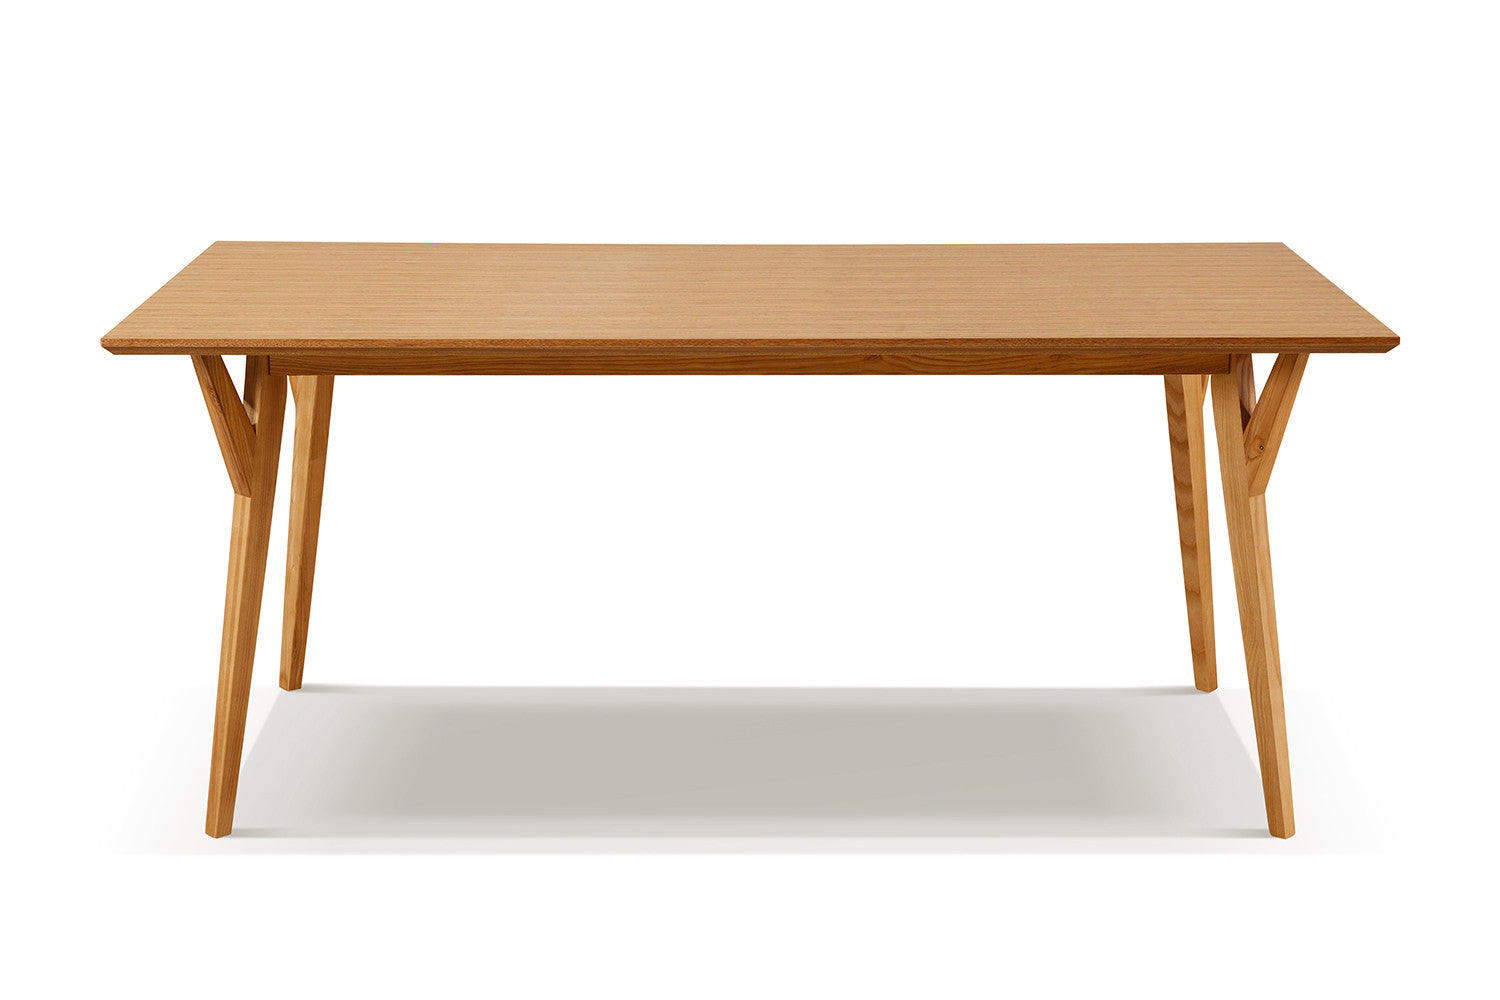 Table salle a manger scandinave for Table salle a manger escamotable